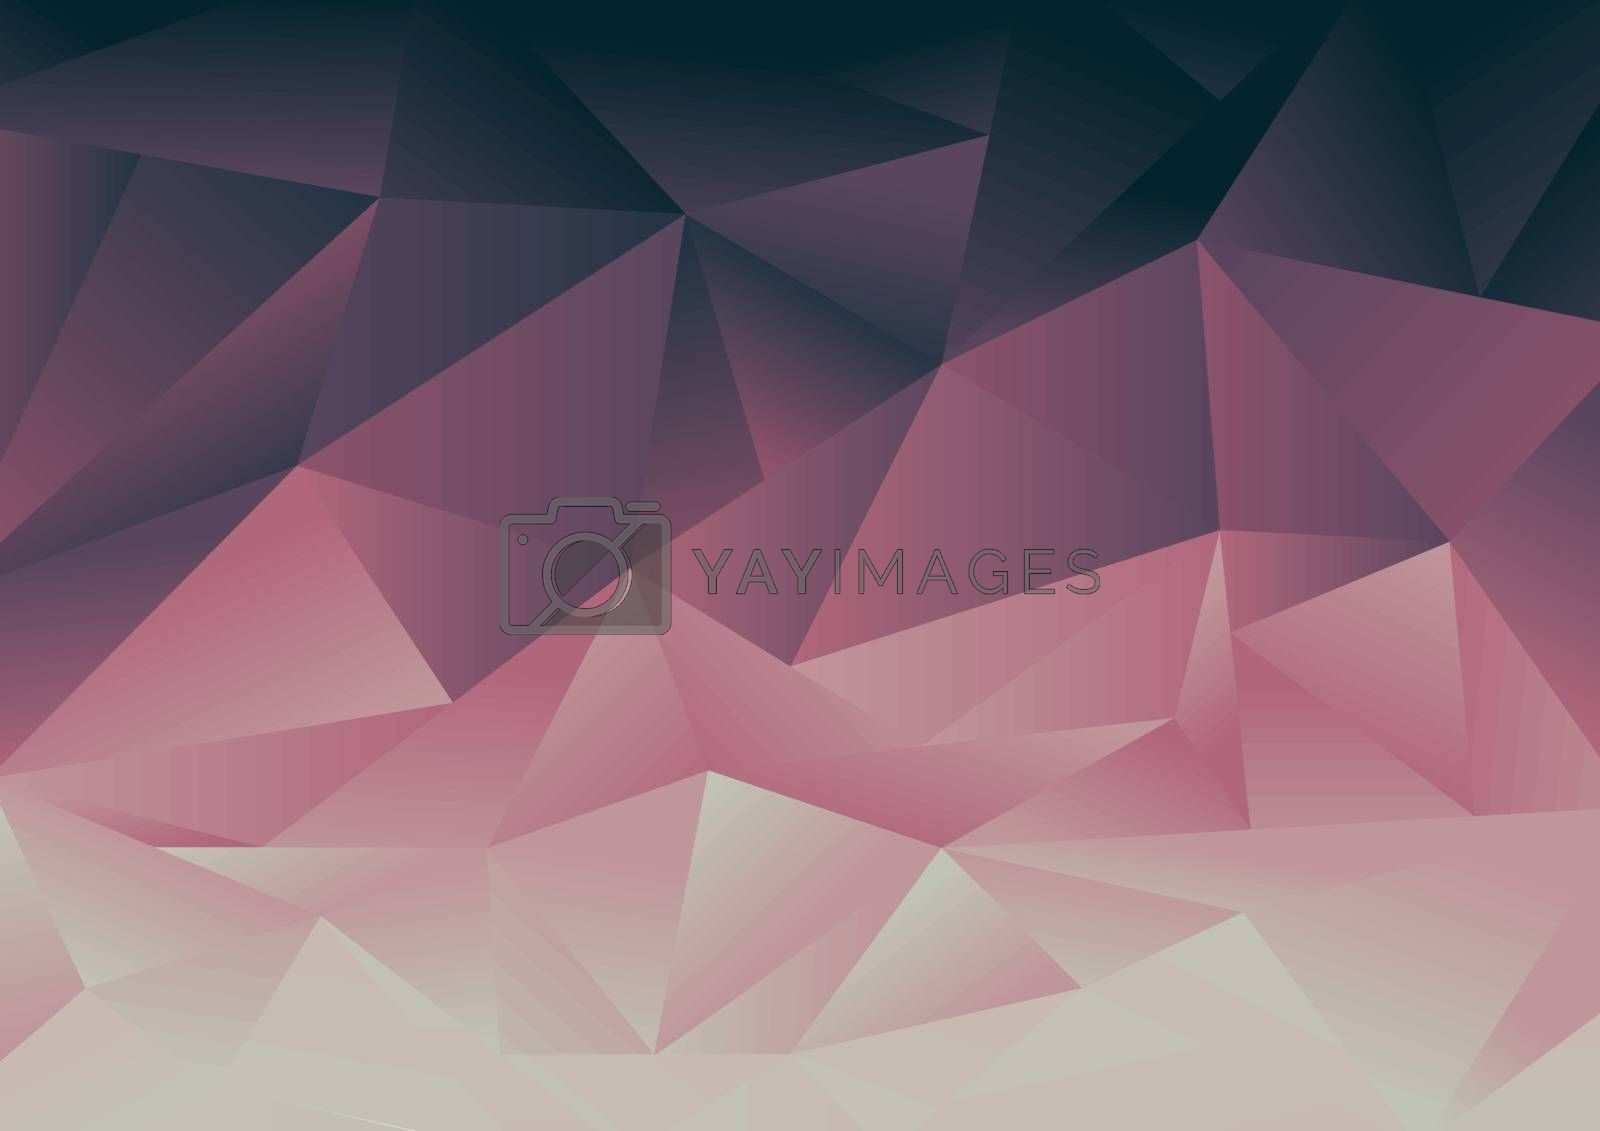 Abstract low polygon pink and blue gradient mosaic background. Geometric triangles design for cover brochure, print ad, banner web, poster, etc. Vector illustration